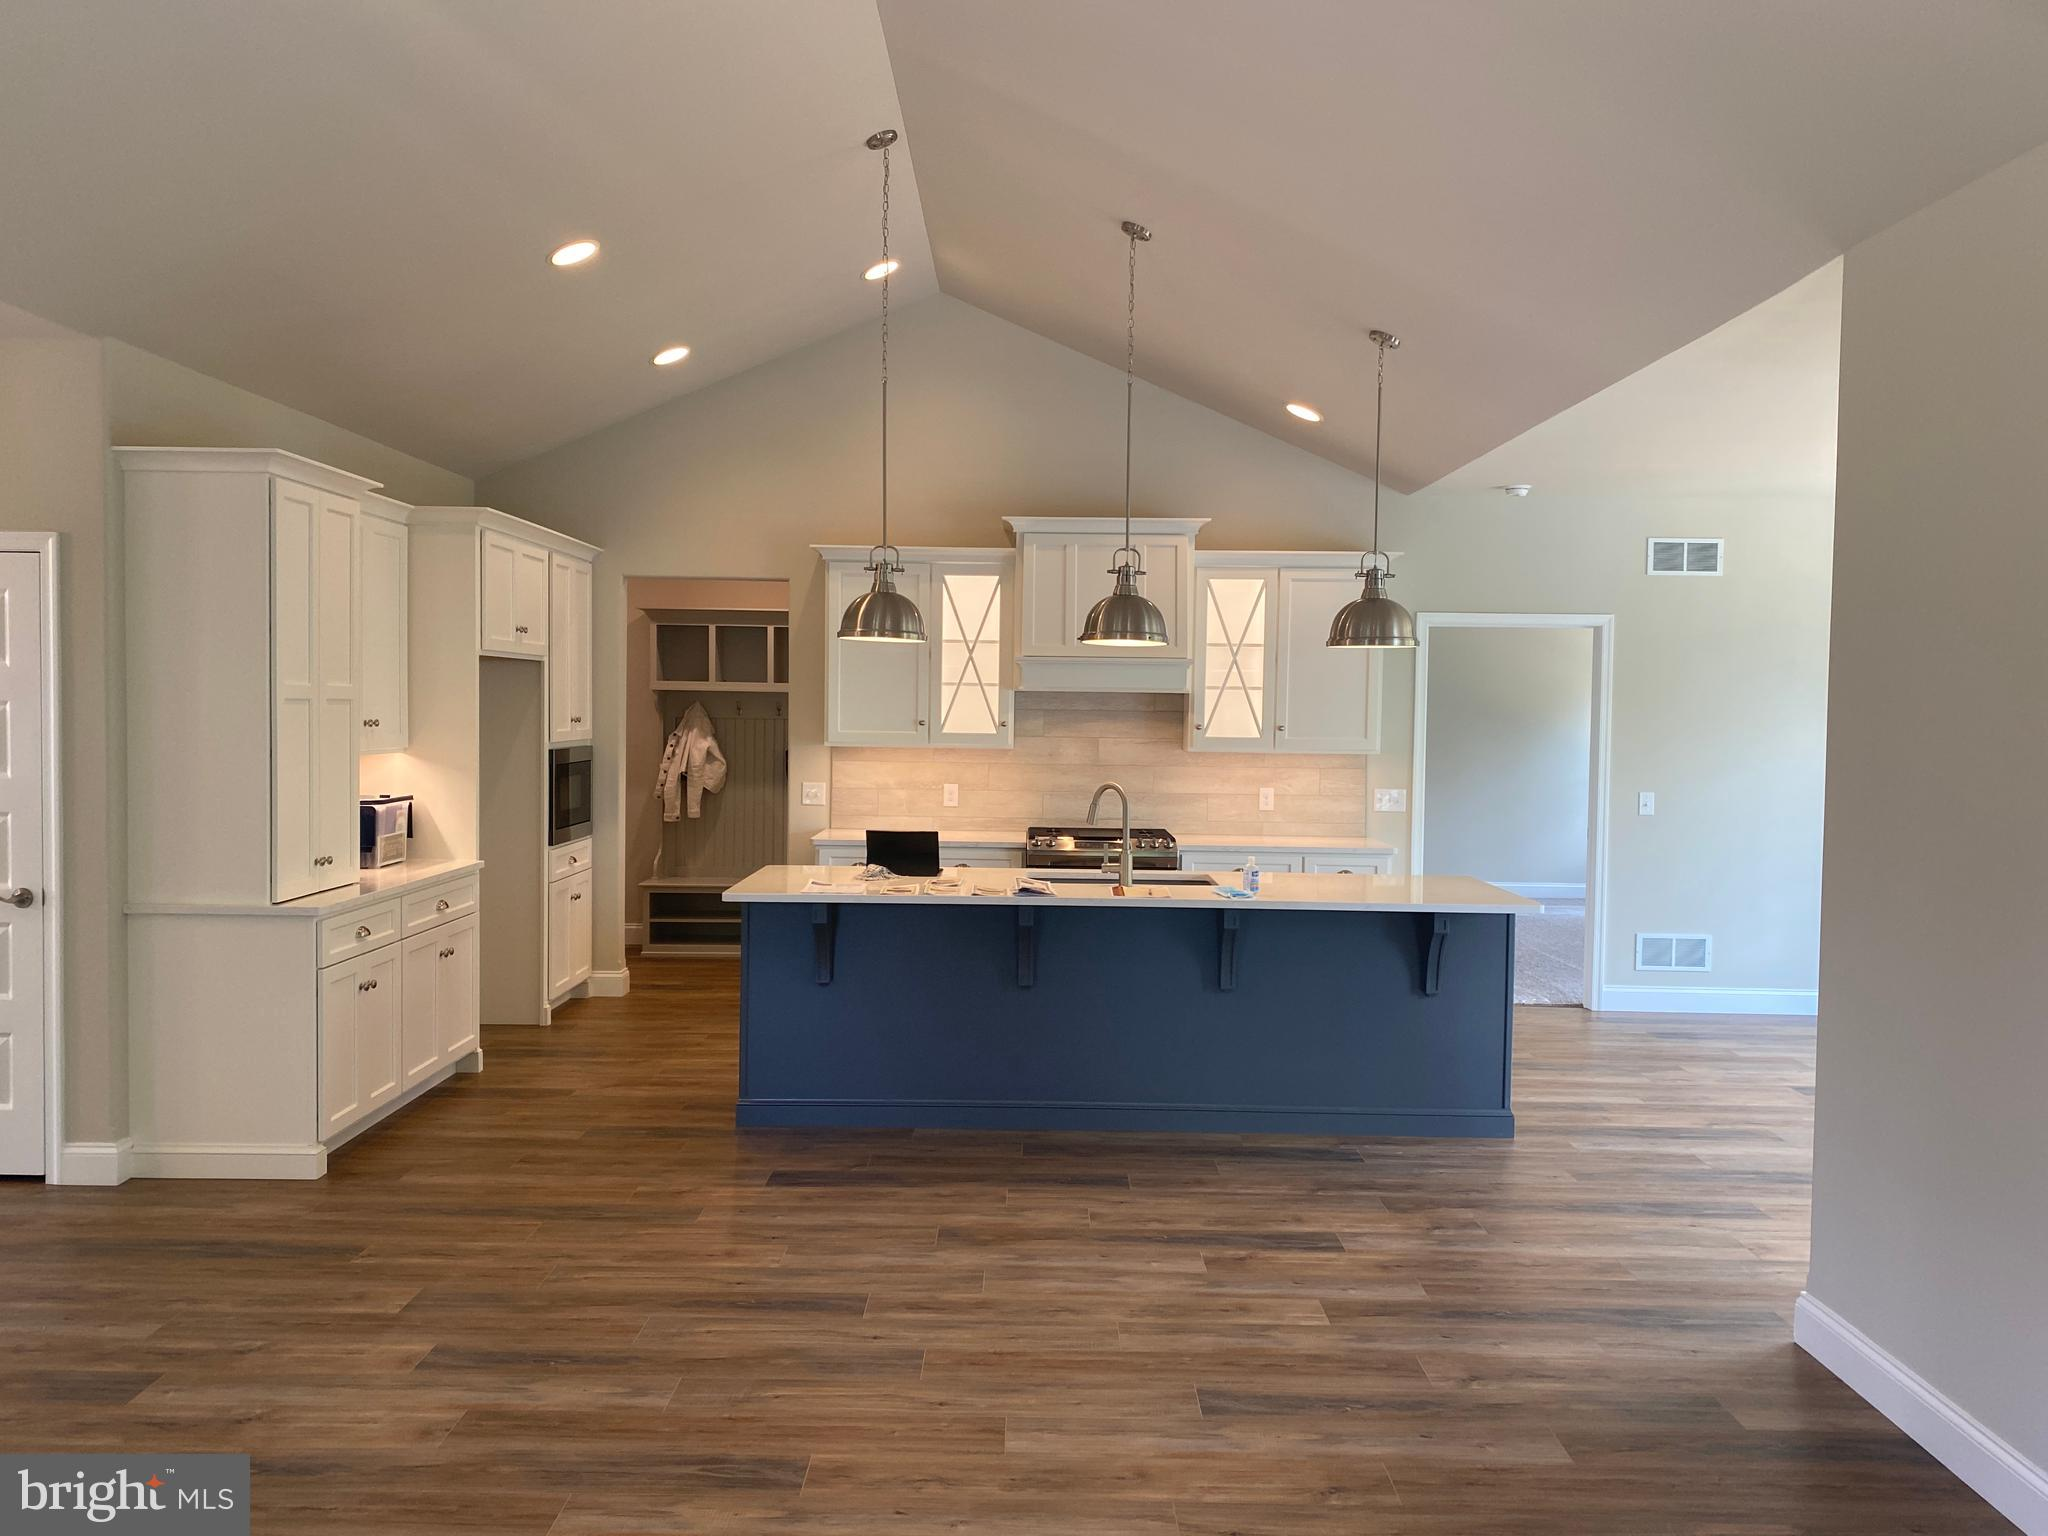 Lighted cabinets and under cabinet lighting